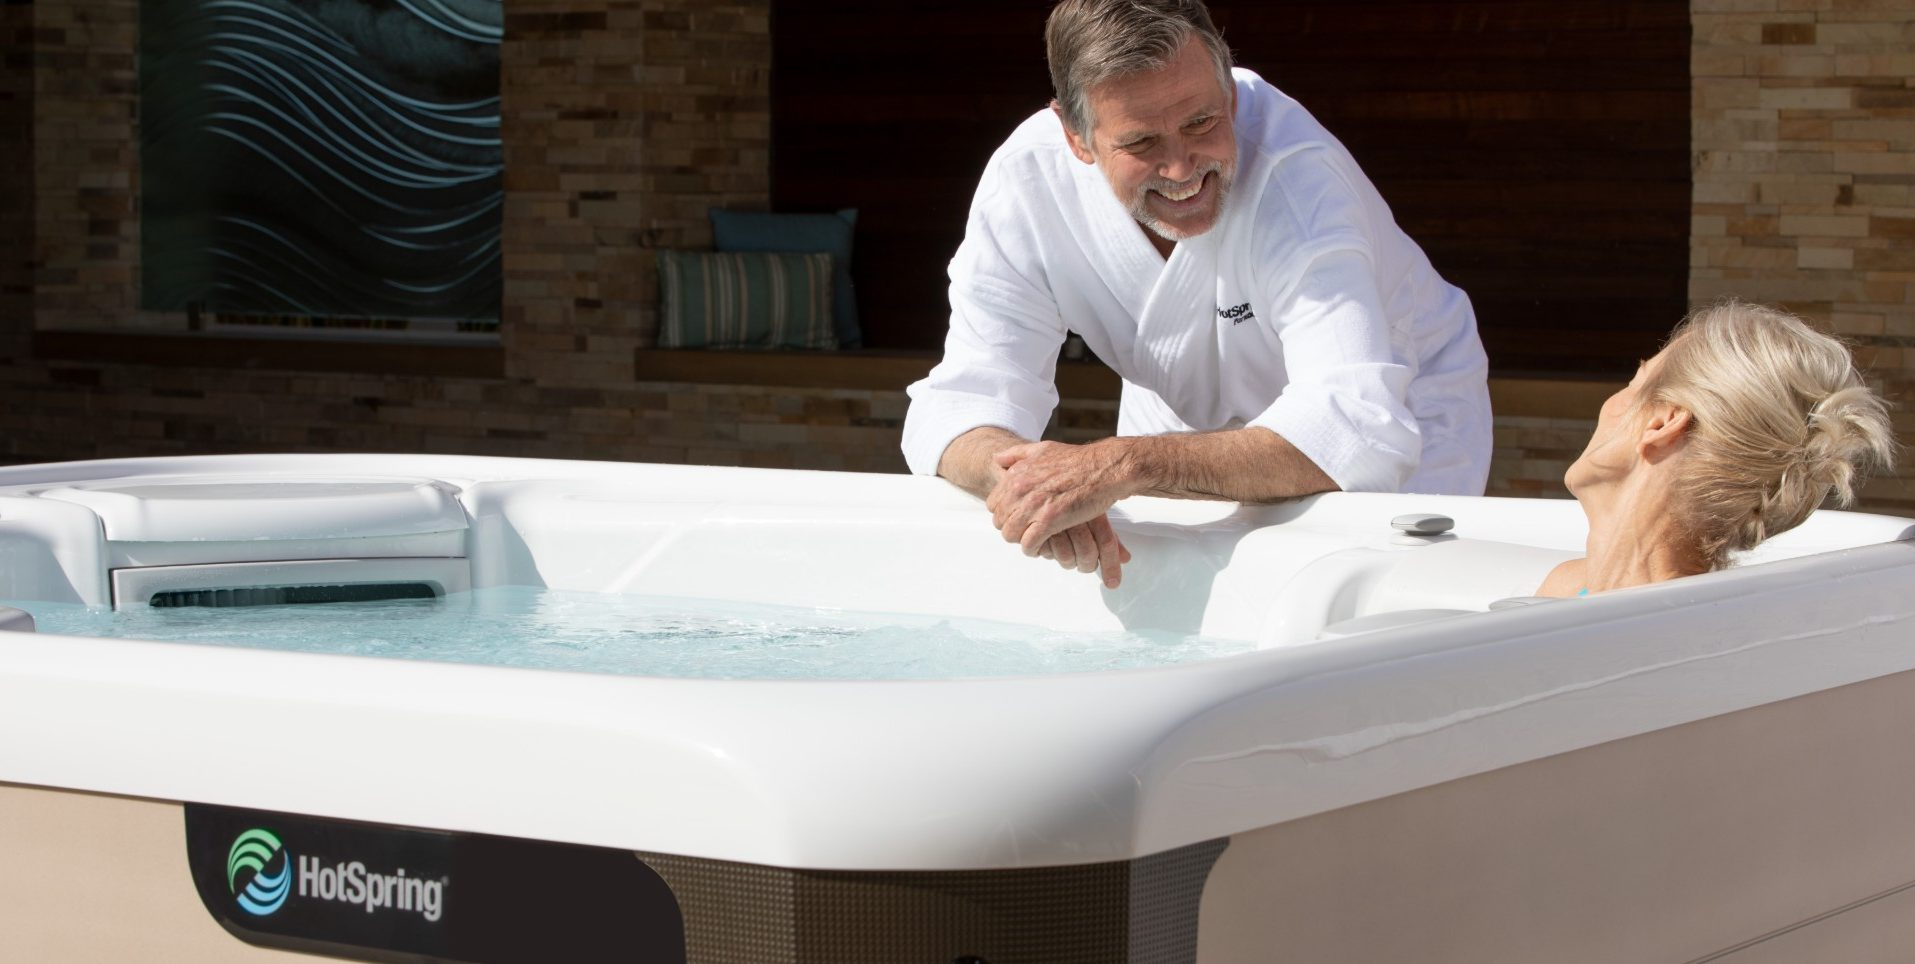 Are Chemicals for Pools and Hot Tubs the Same?